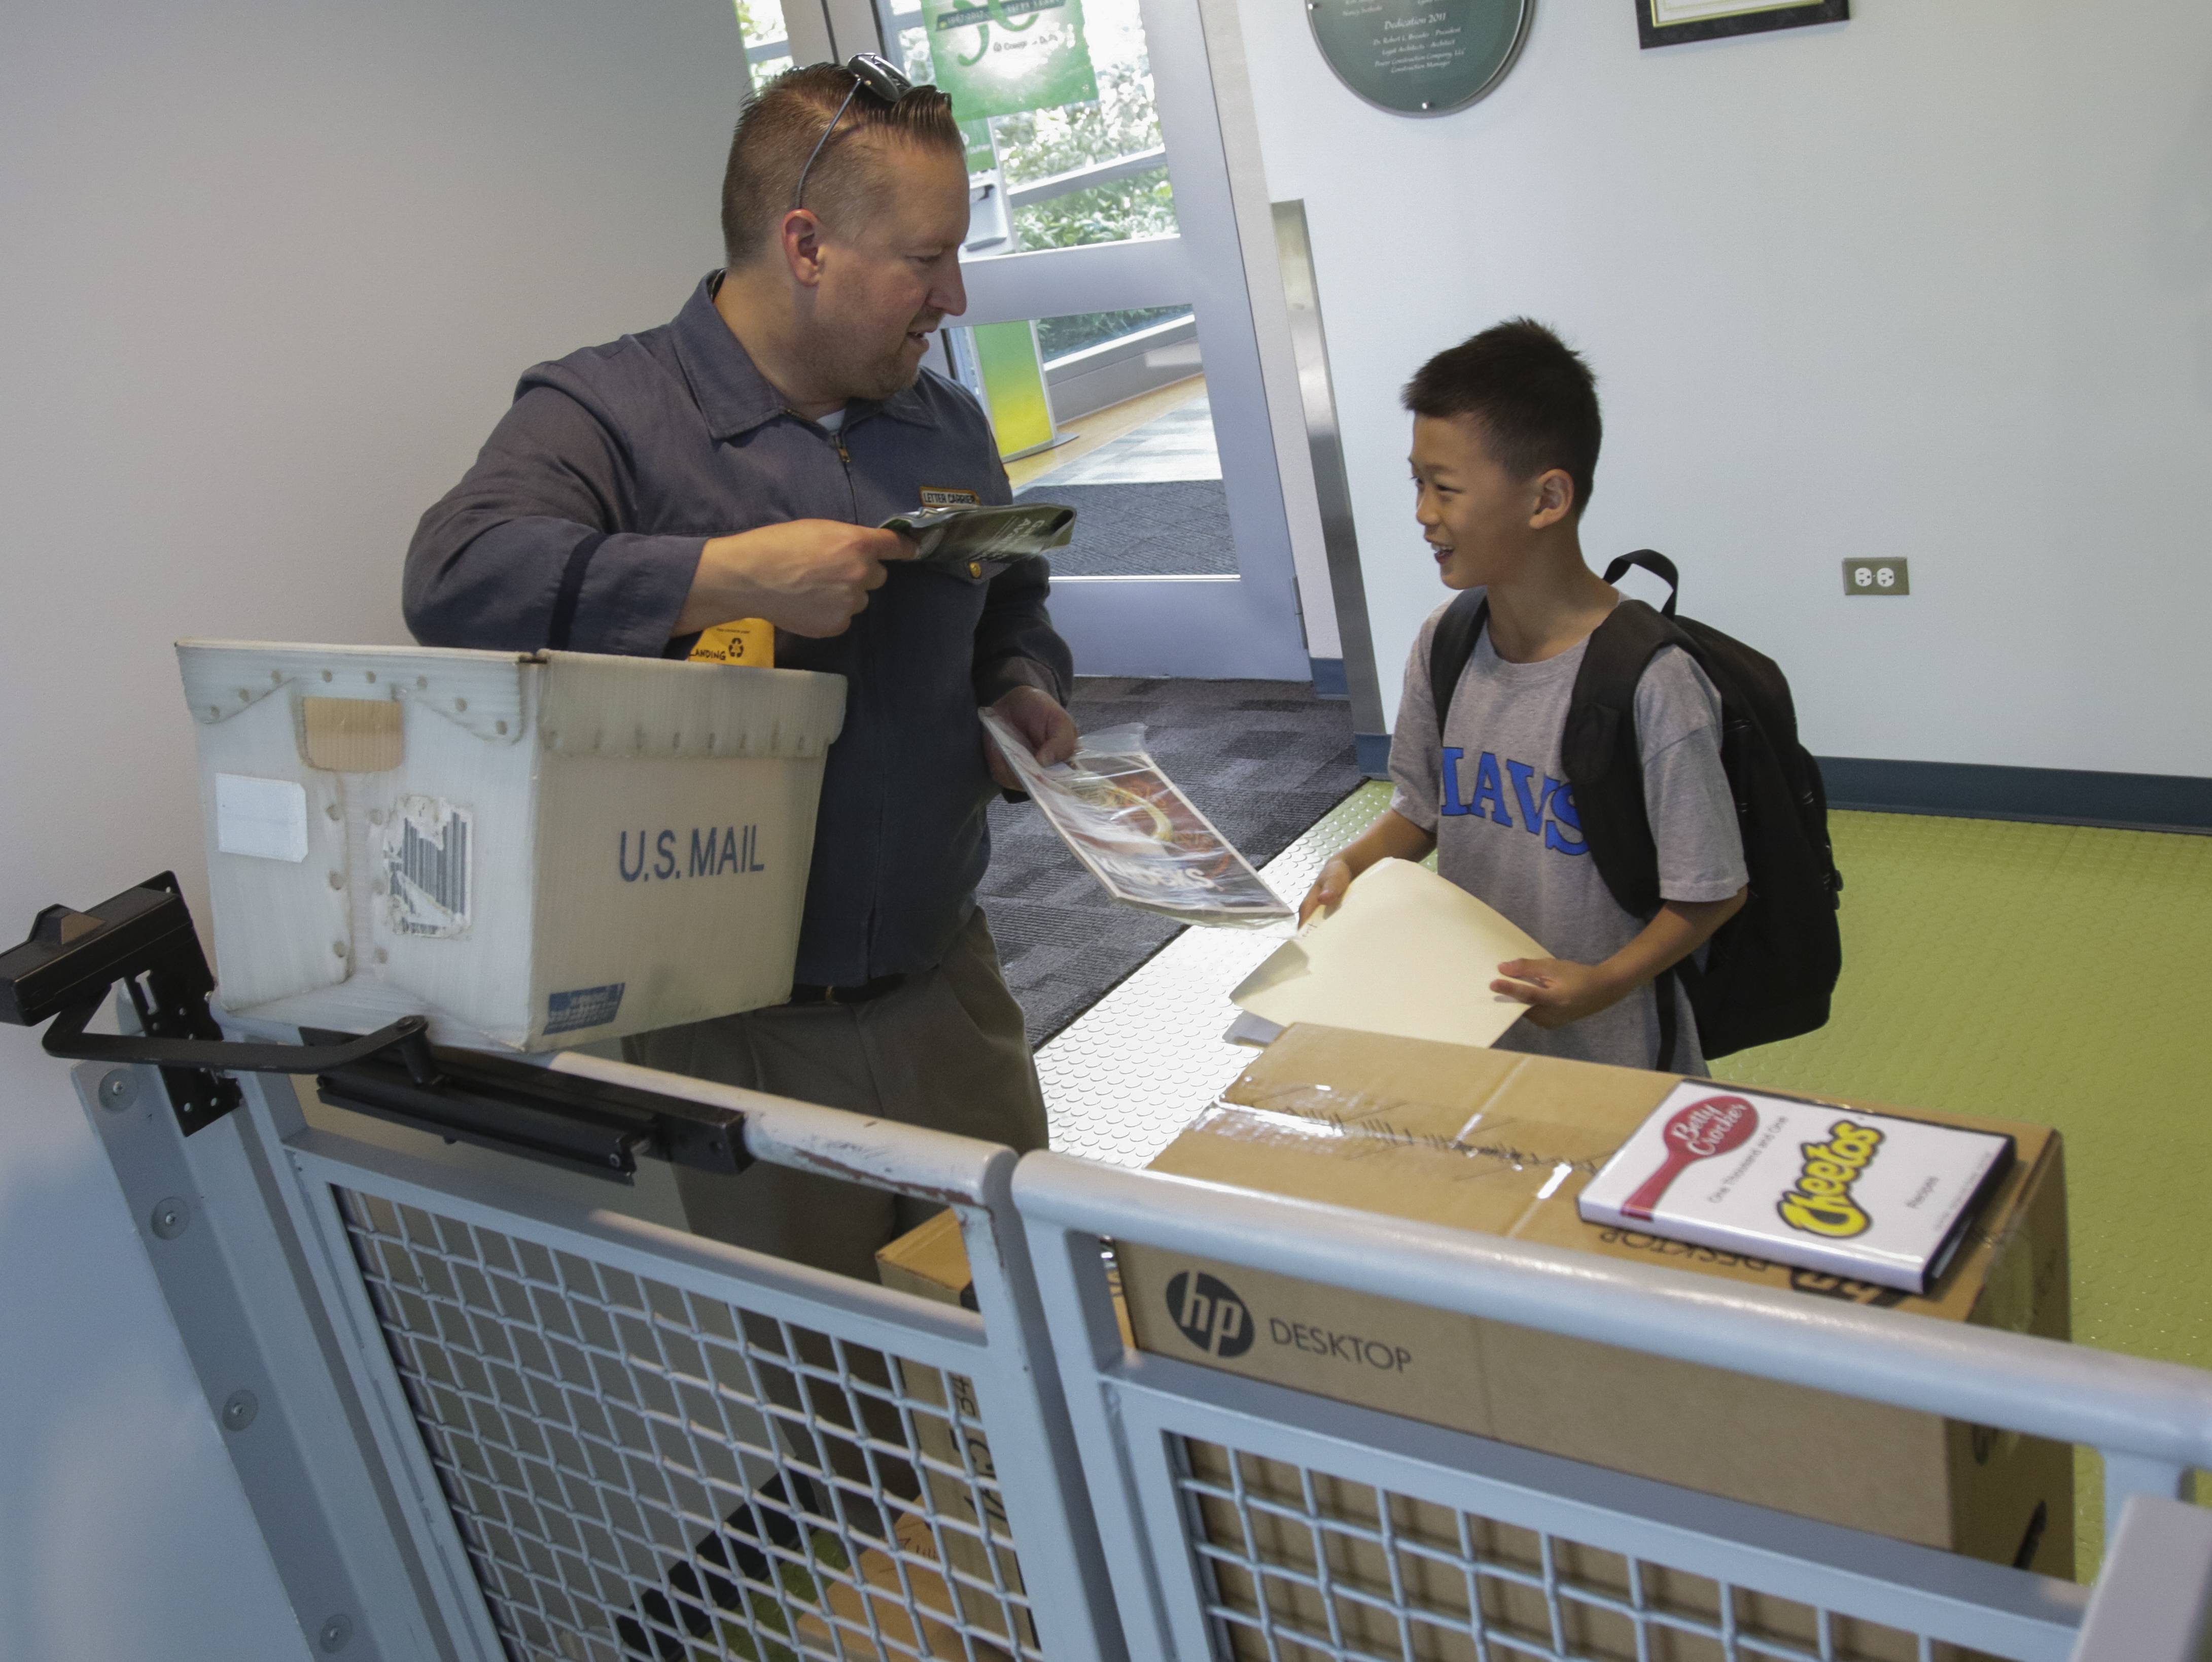 Justin Wagner, lead instructor, plays the part of a postal worker, with student Ryan Chen, 10, of Naperville, at GenCyber camp at the College of DuPage in Glen Ellyn. Students use skills to solve cyber crimes at the college's Homeland Security Training Center.